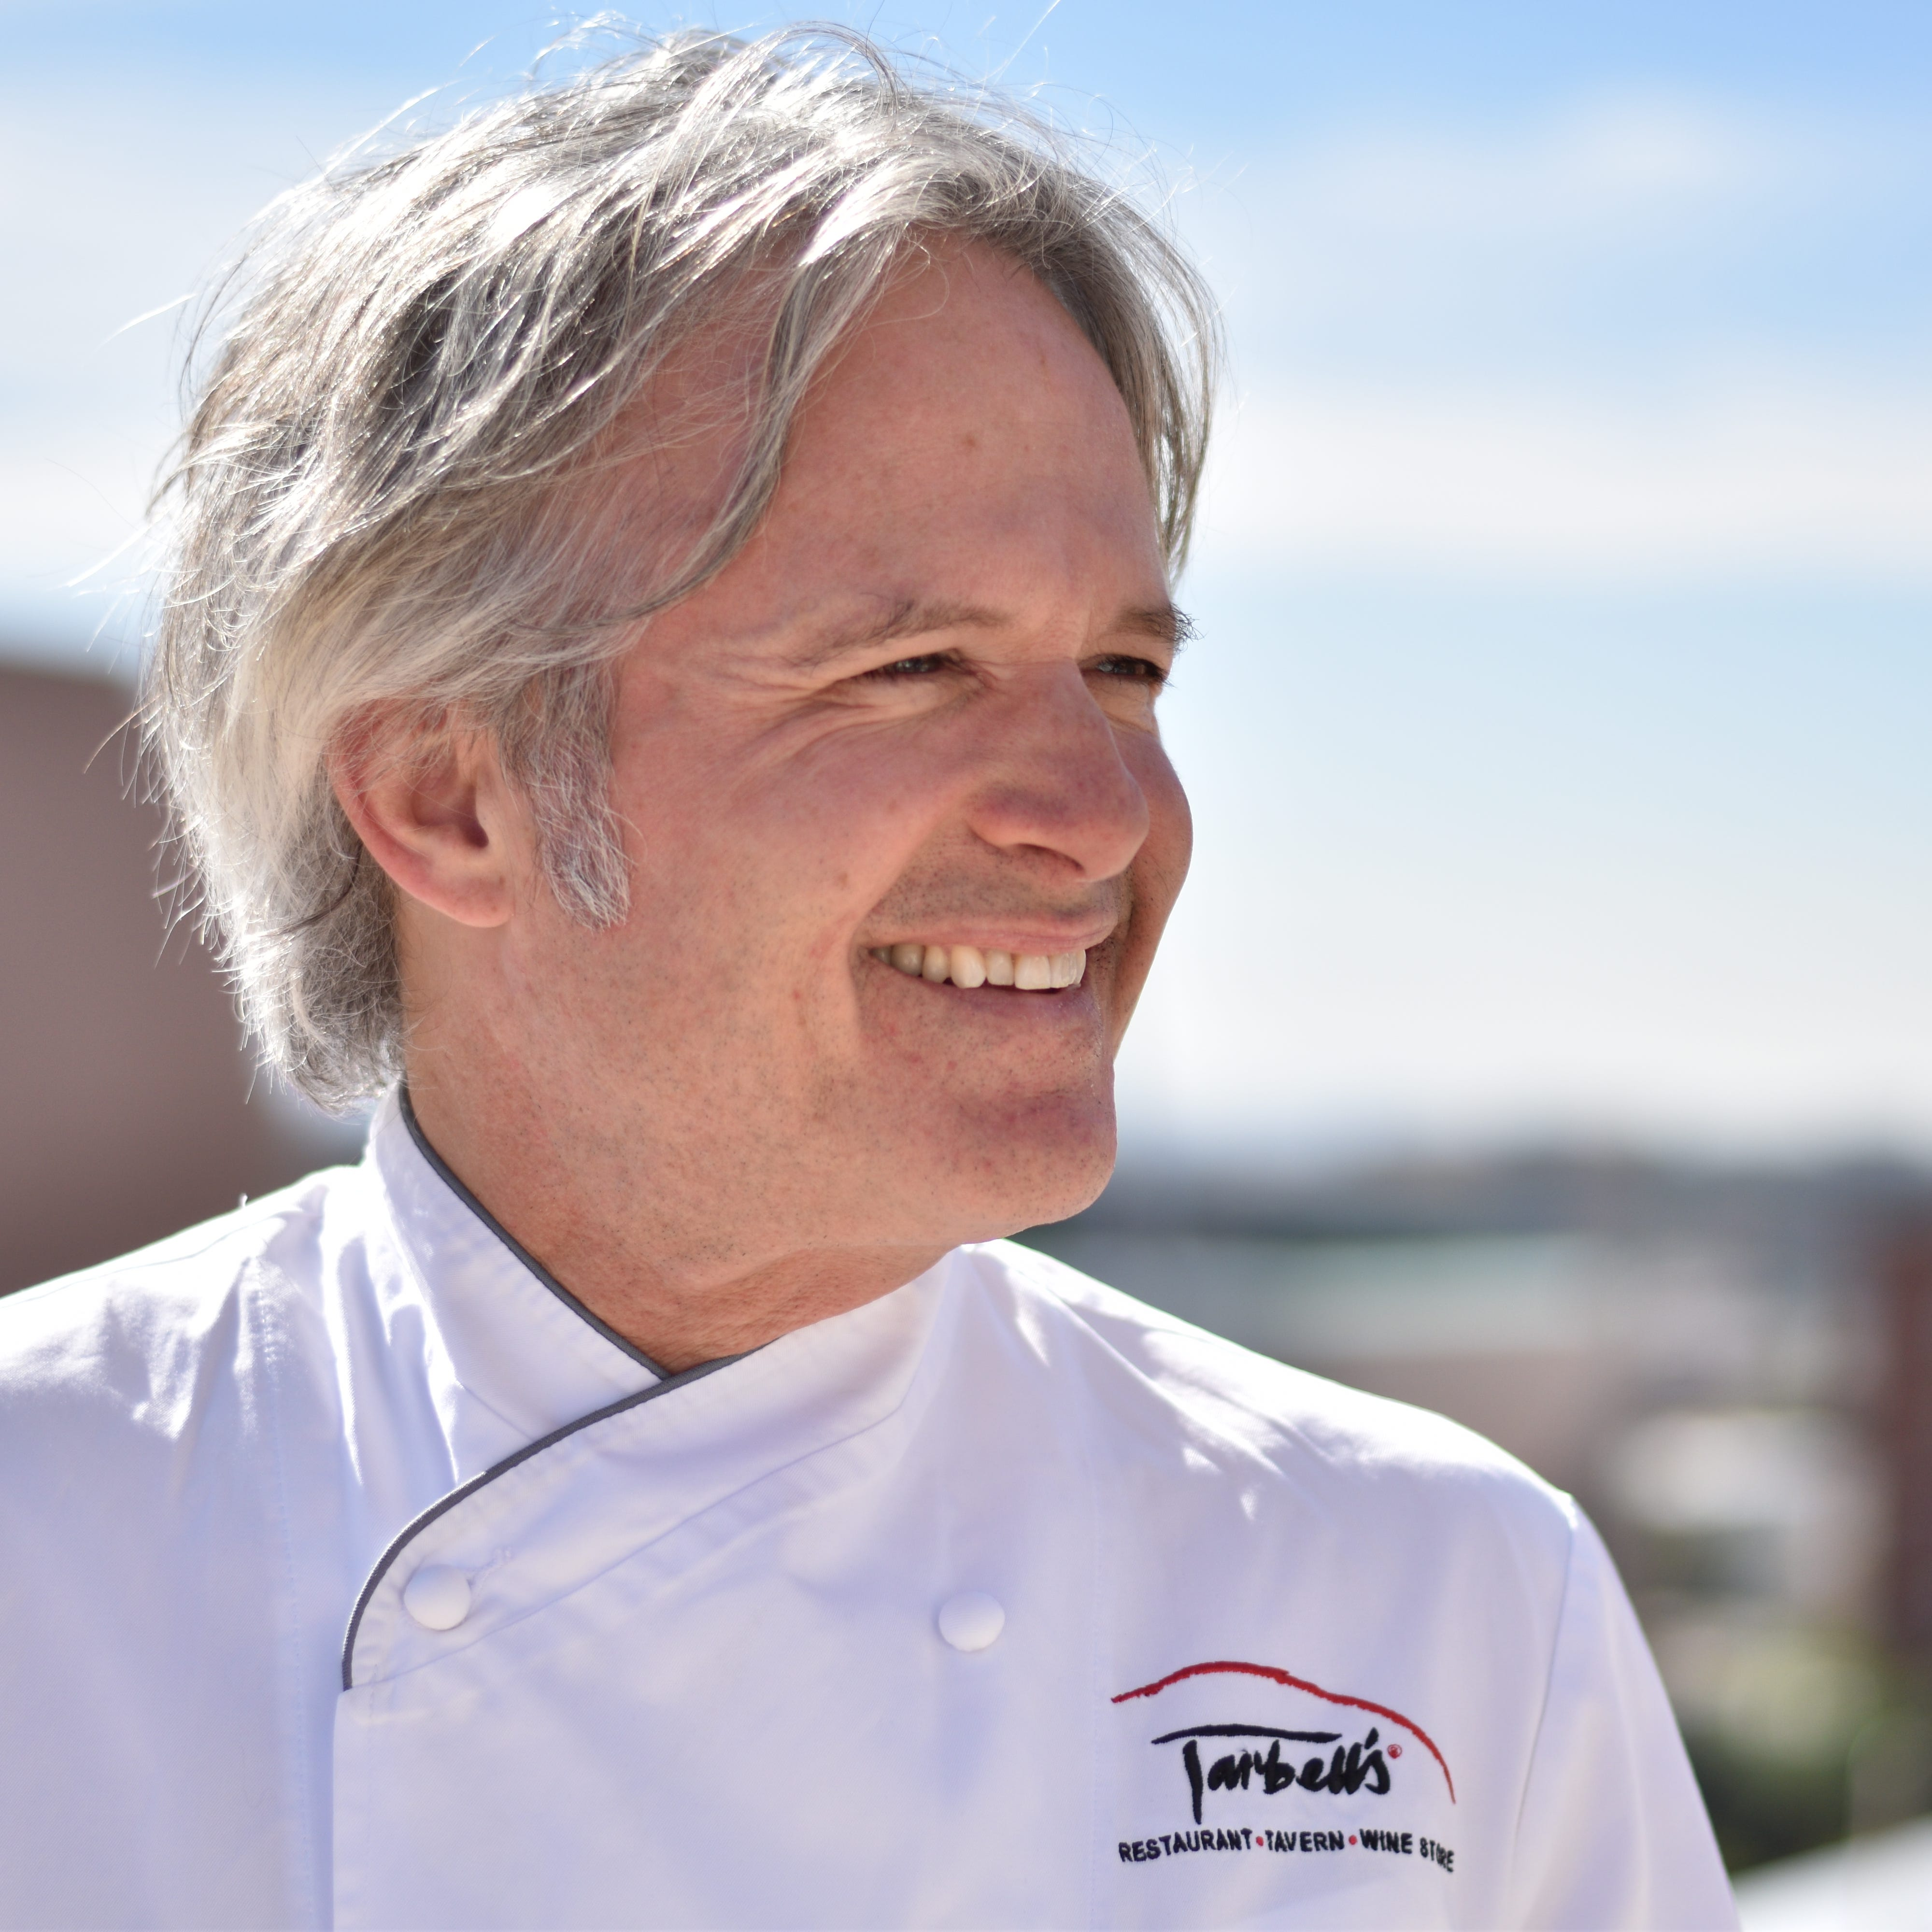 'Plate & Pour' with Mark Tarbell: 5 things to know about AZ food show on Arizona PBS